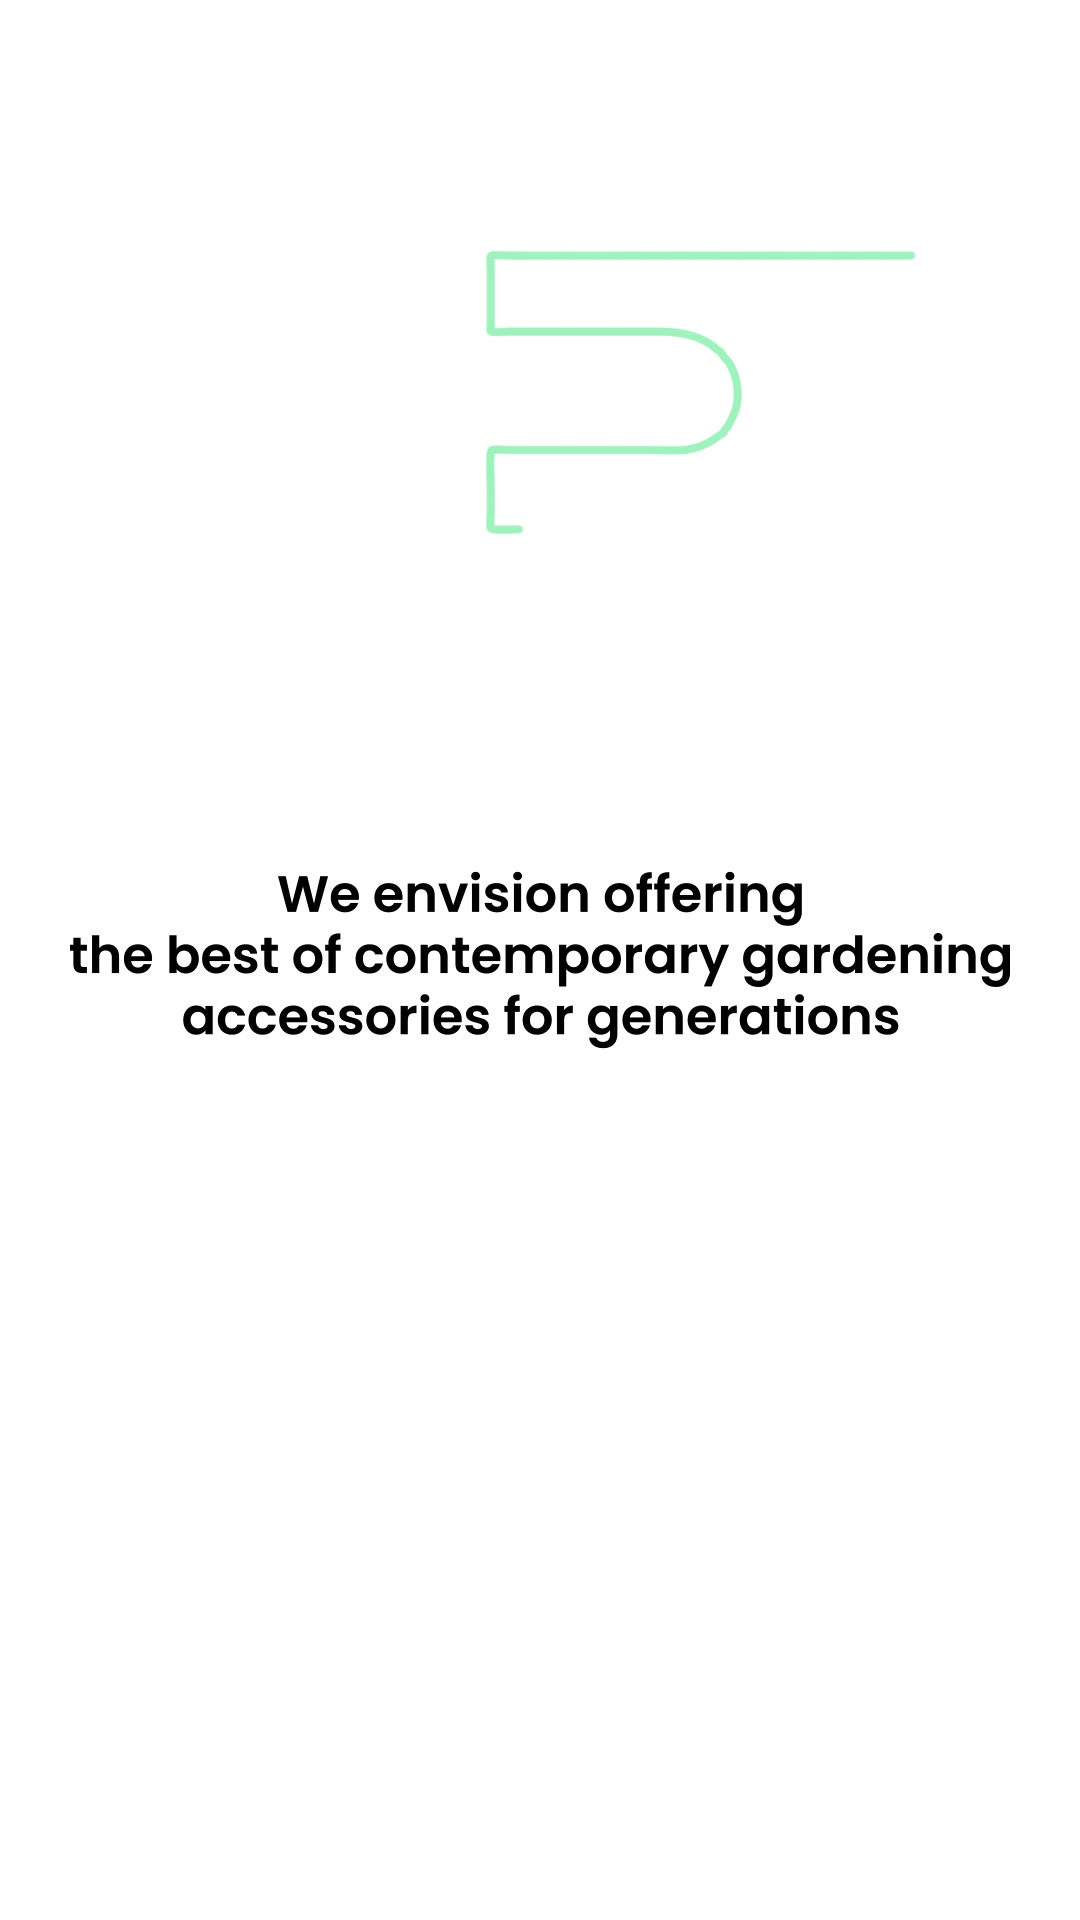 We envision offering the best of contemporary gardening accessories for generations  We vouch for quality   Customer gratification pleases us  Awaken your love for gardening and trust only the best for all your collection of gardening accessories.  #GardeningAccessories #GardeningTools #ModernGardeningTools #GardeningProducts #GardenProducts #Sharpex #SharpexIndia